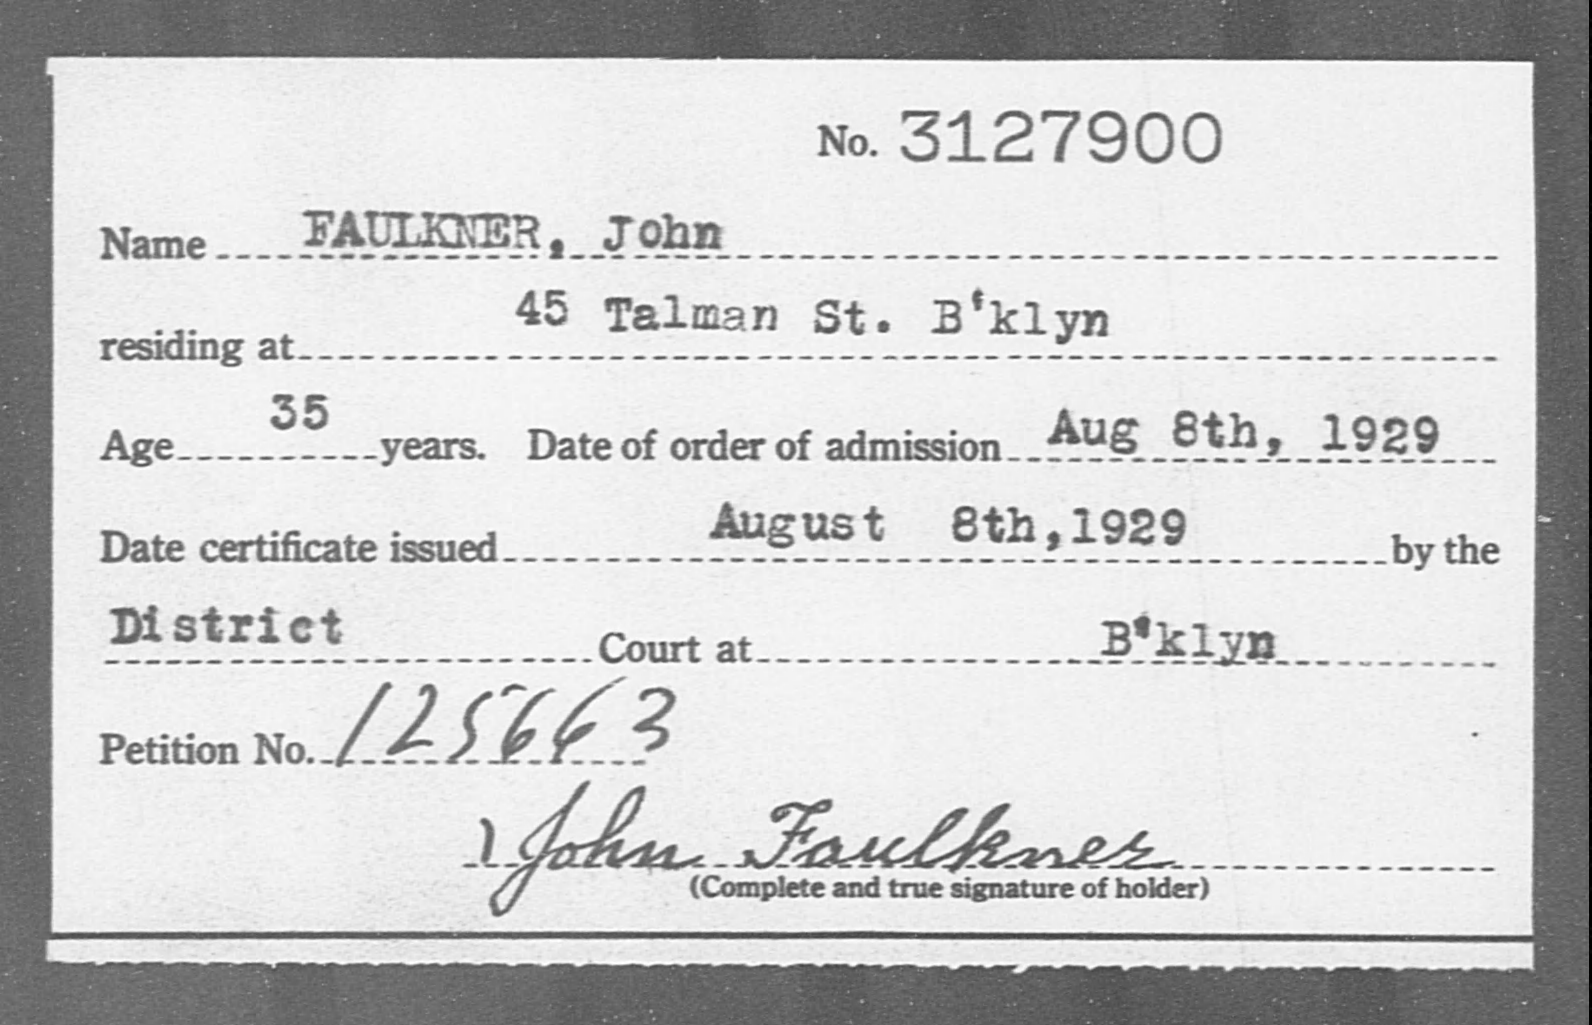 FAULKNER, John - Born: [BLANK], Naturalized: 1929